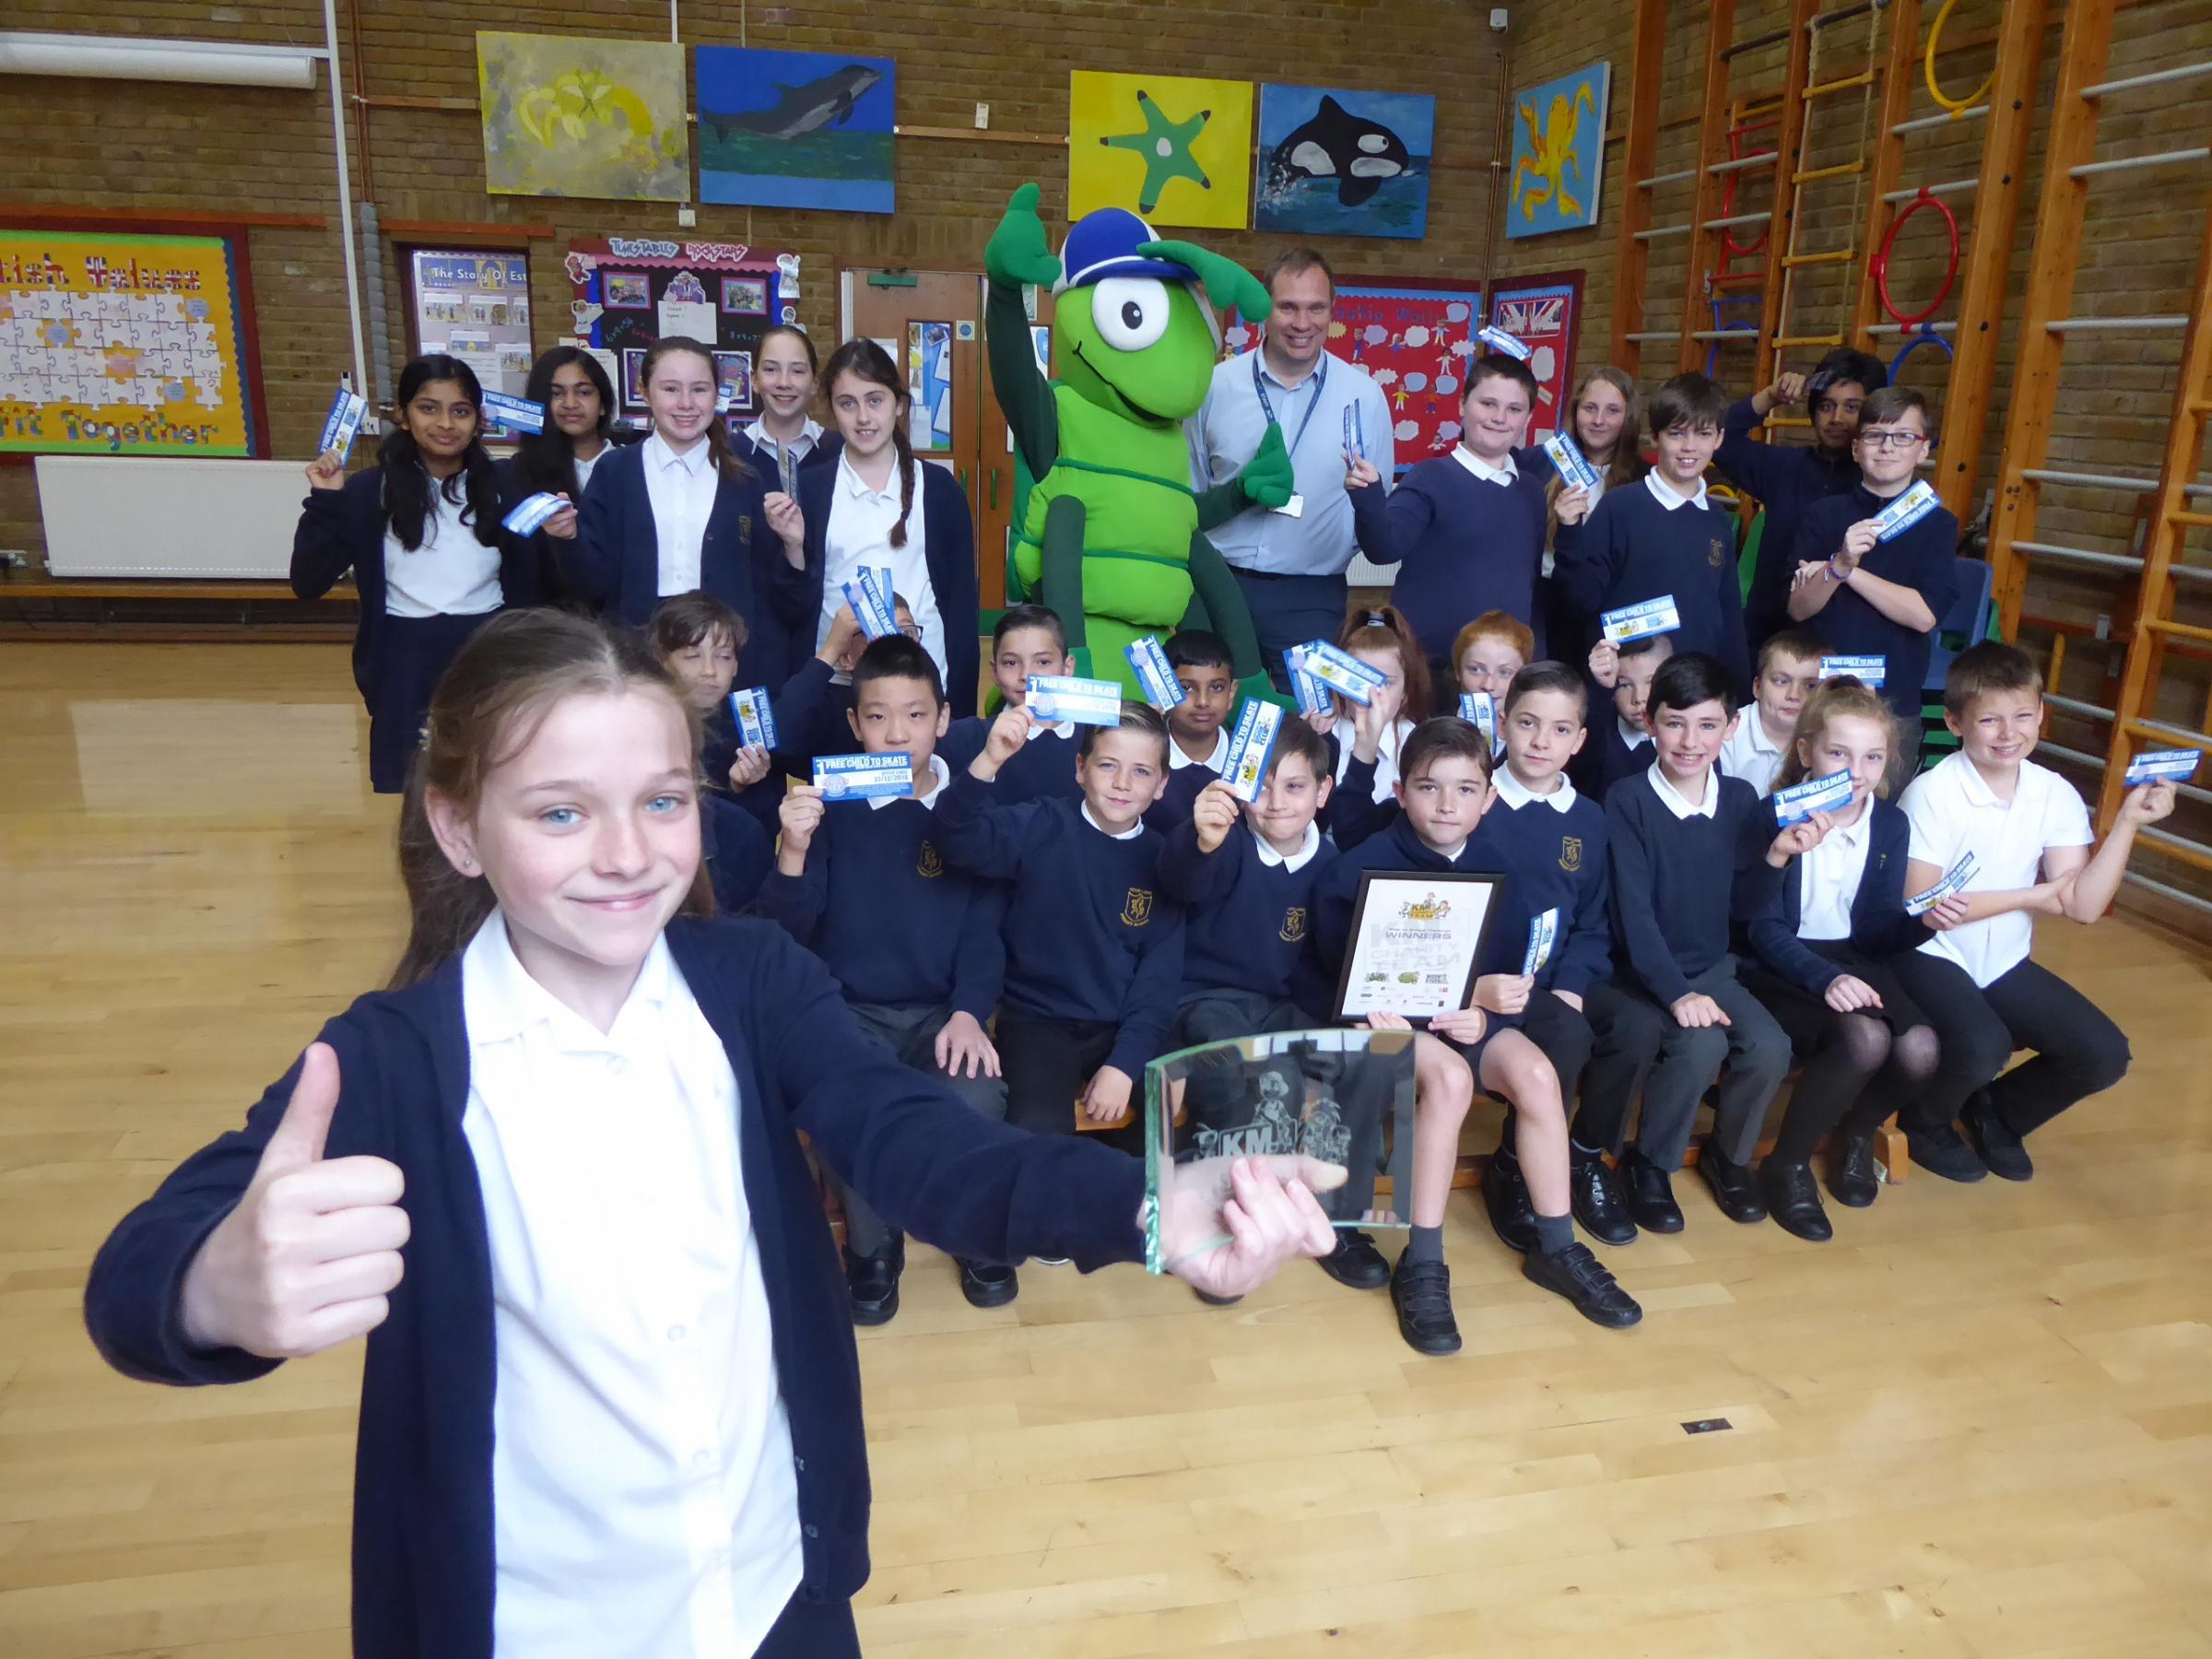 Pupil Isabelle and her class at Hook Lane Primary School